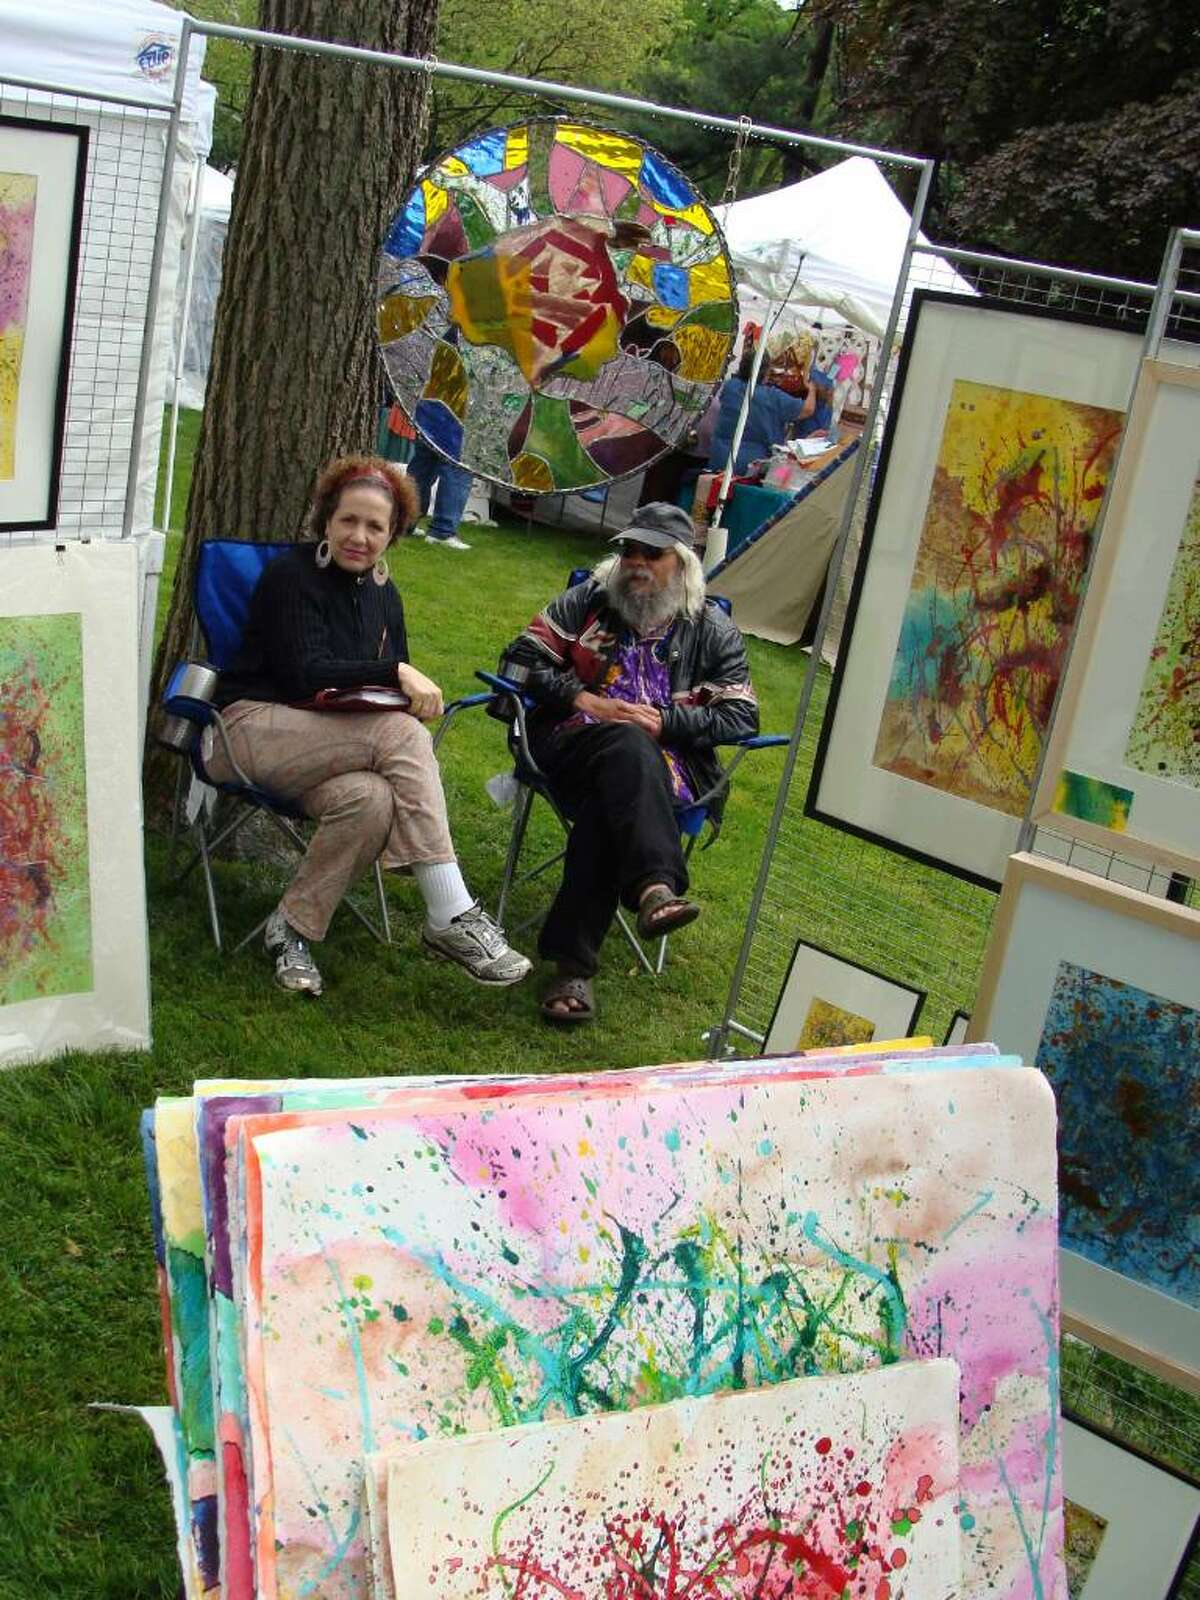 """Lisa Bershtein, left, and Eduardo A. LaChall Bencomo sit amidst Bencomo's creations on """"art on paper"""" and """"art with glass and stone"""" at the arts and crafts market on Saturday."""